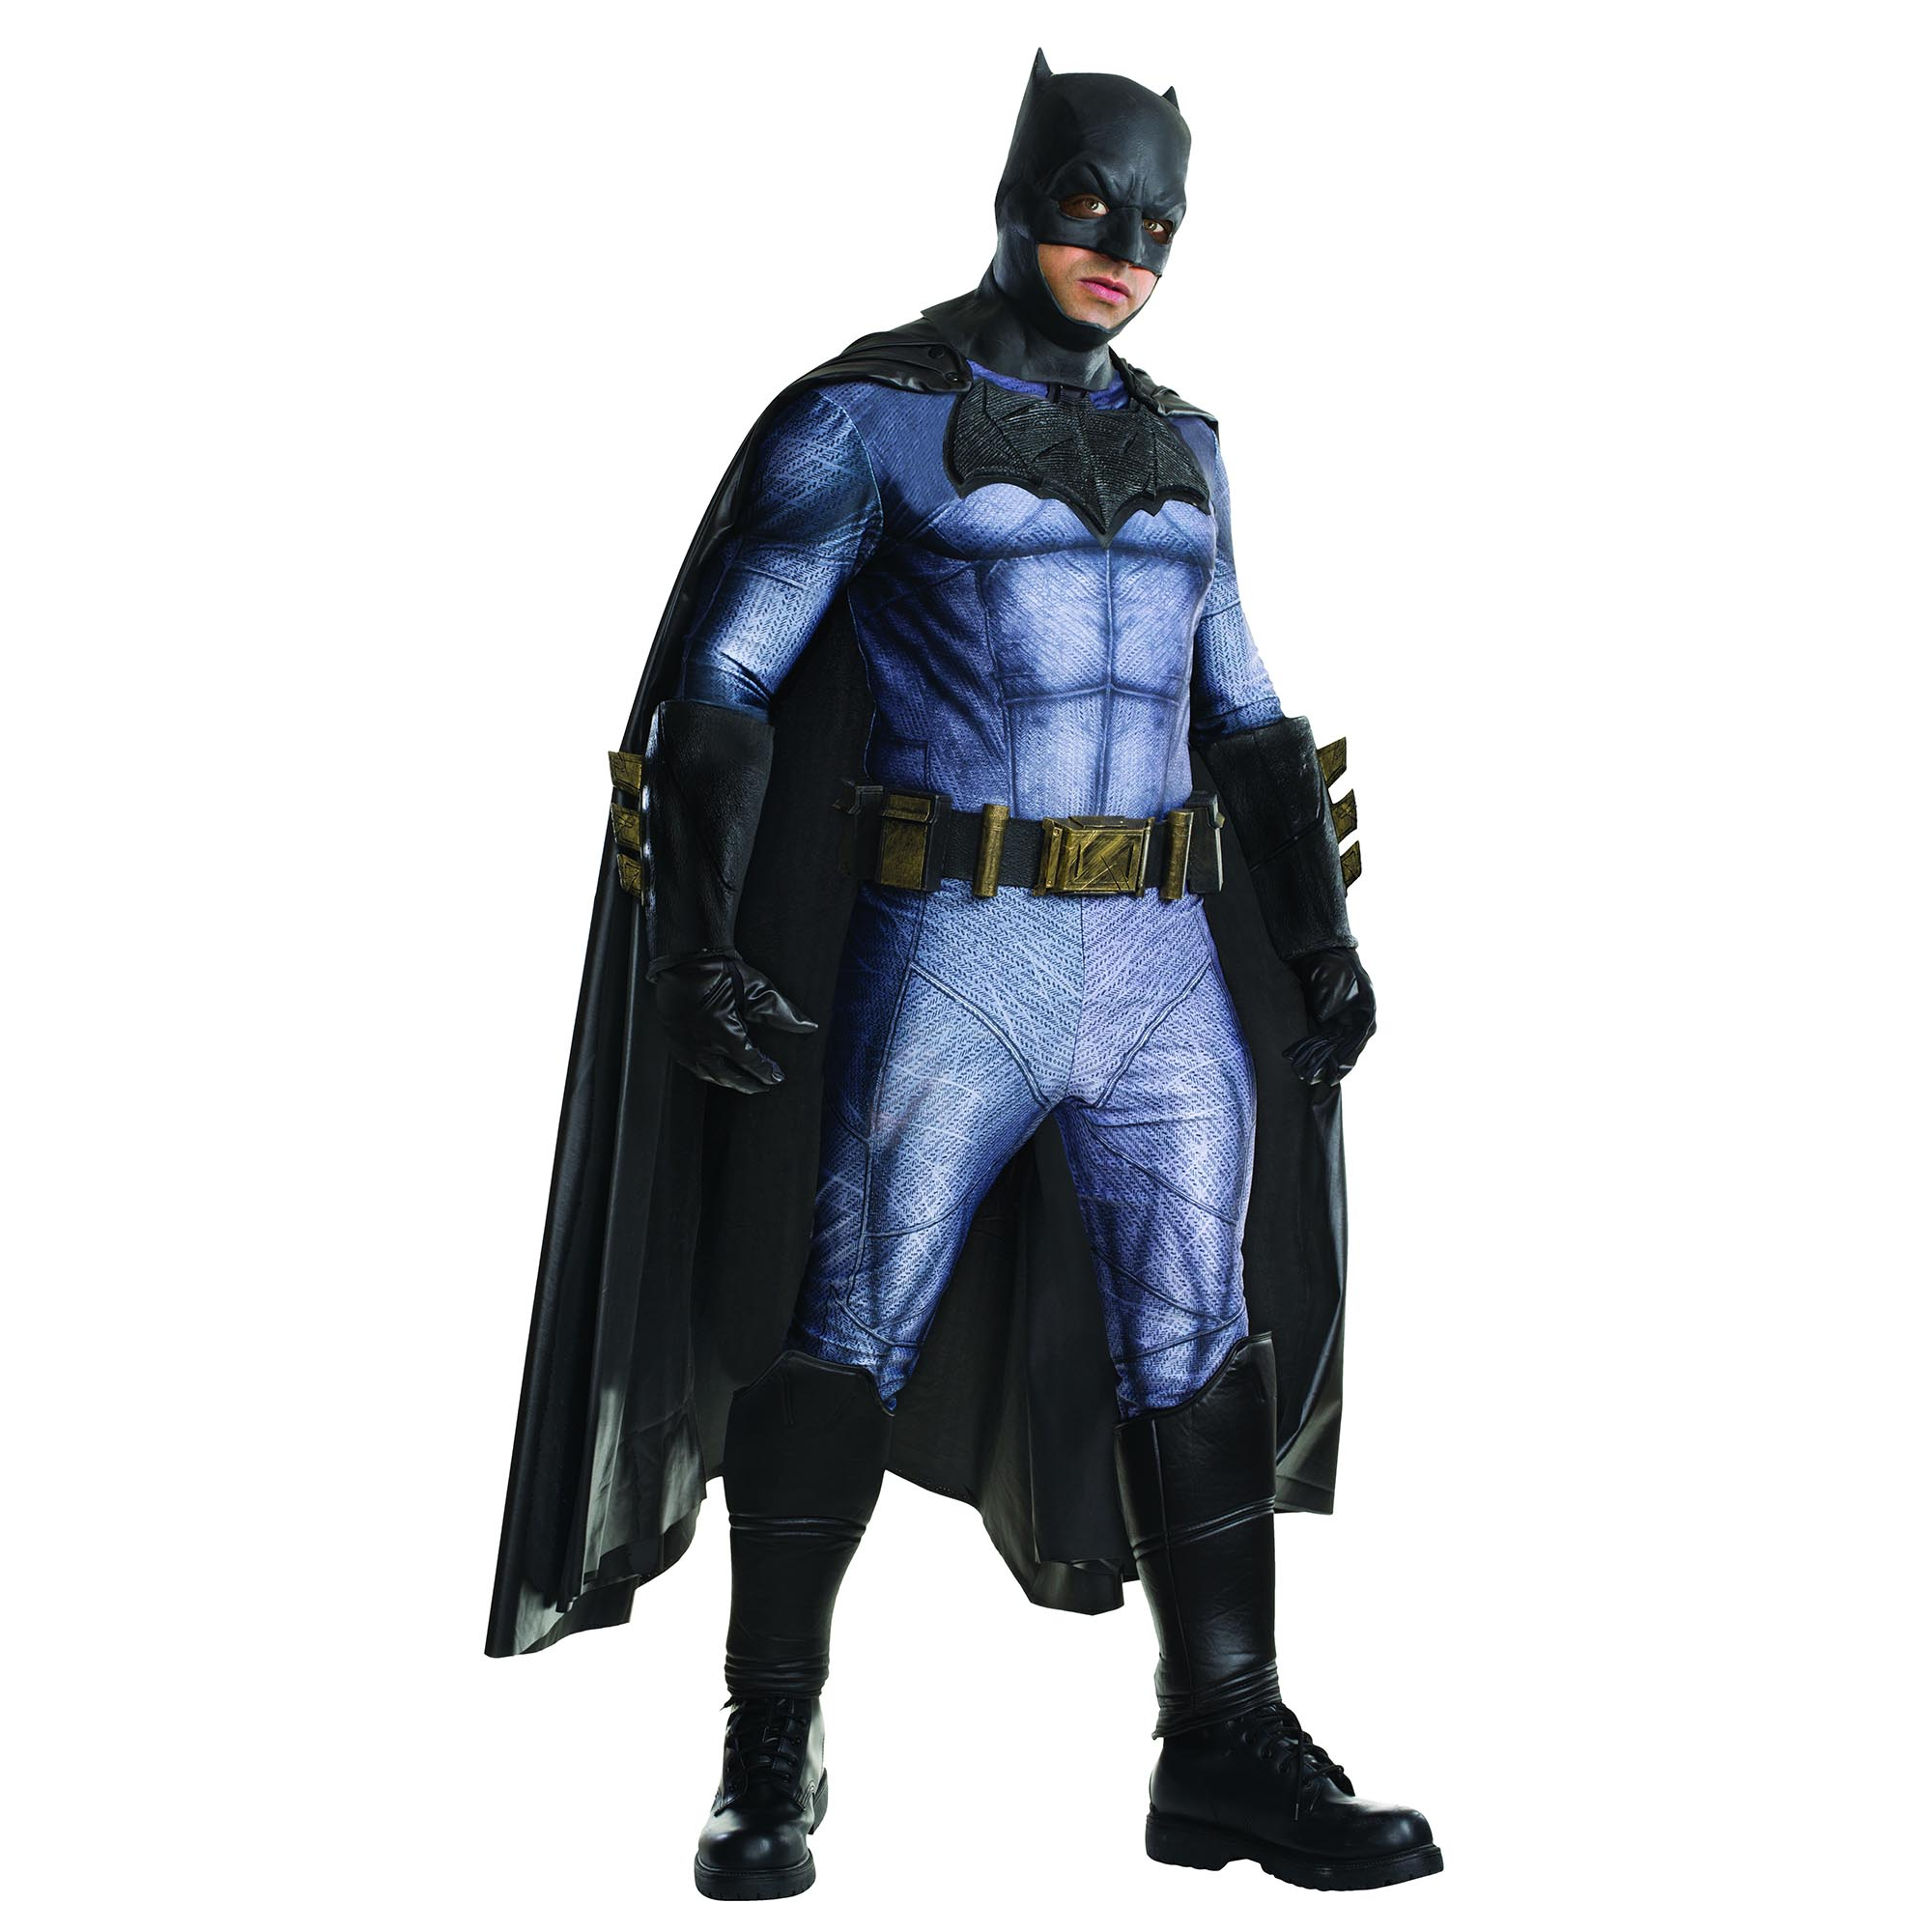 Batman Vs Superman: Dawn of Justice Batman Grand Heritage Men's Adult Halloween Costume, One Size Fits Most